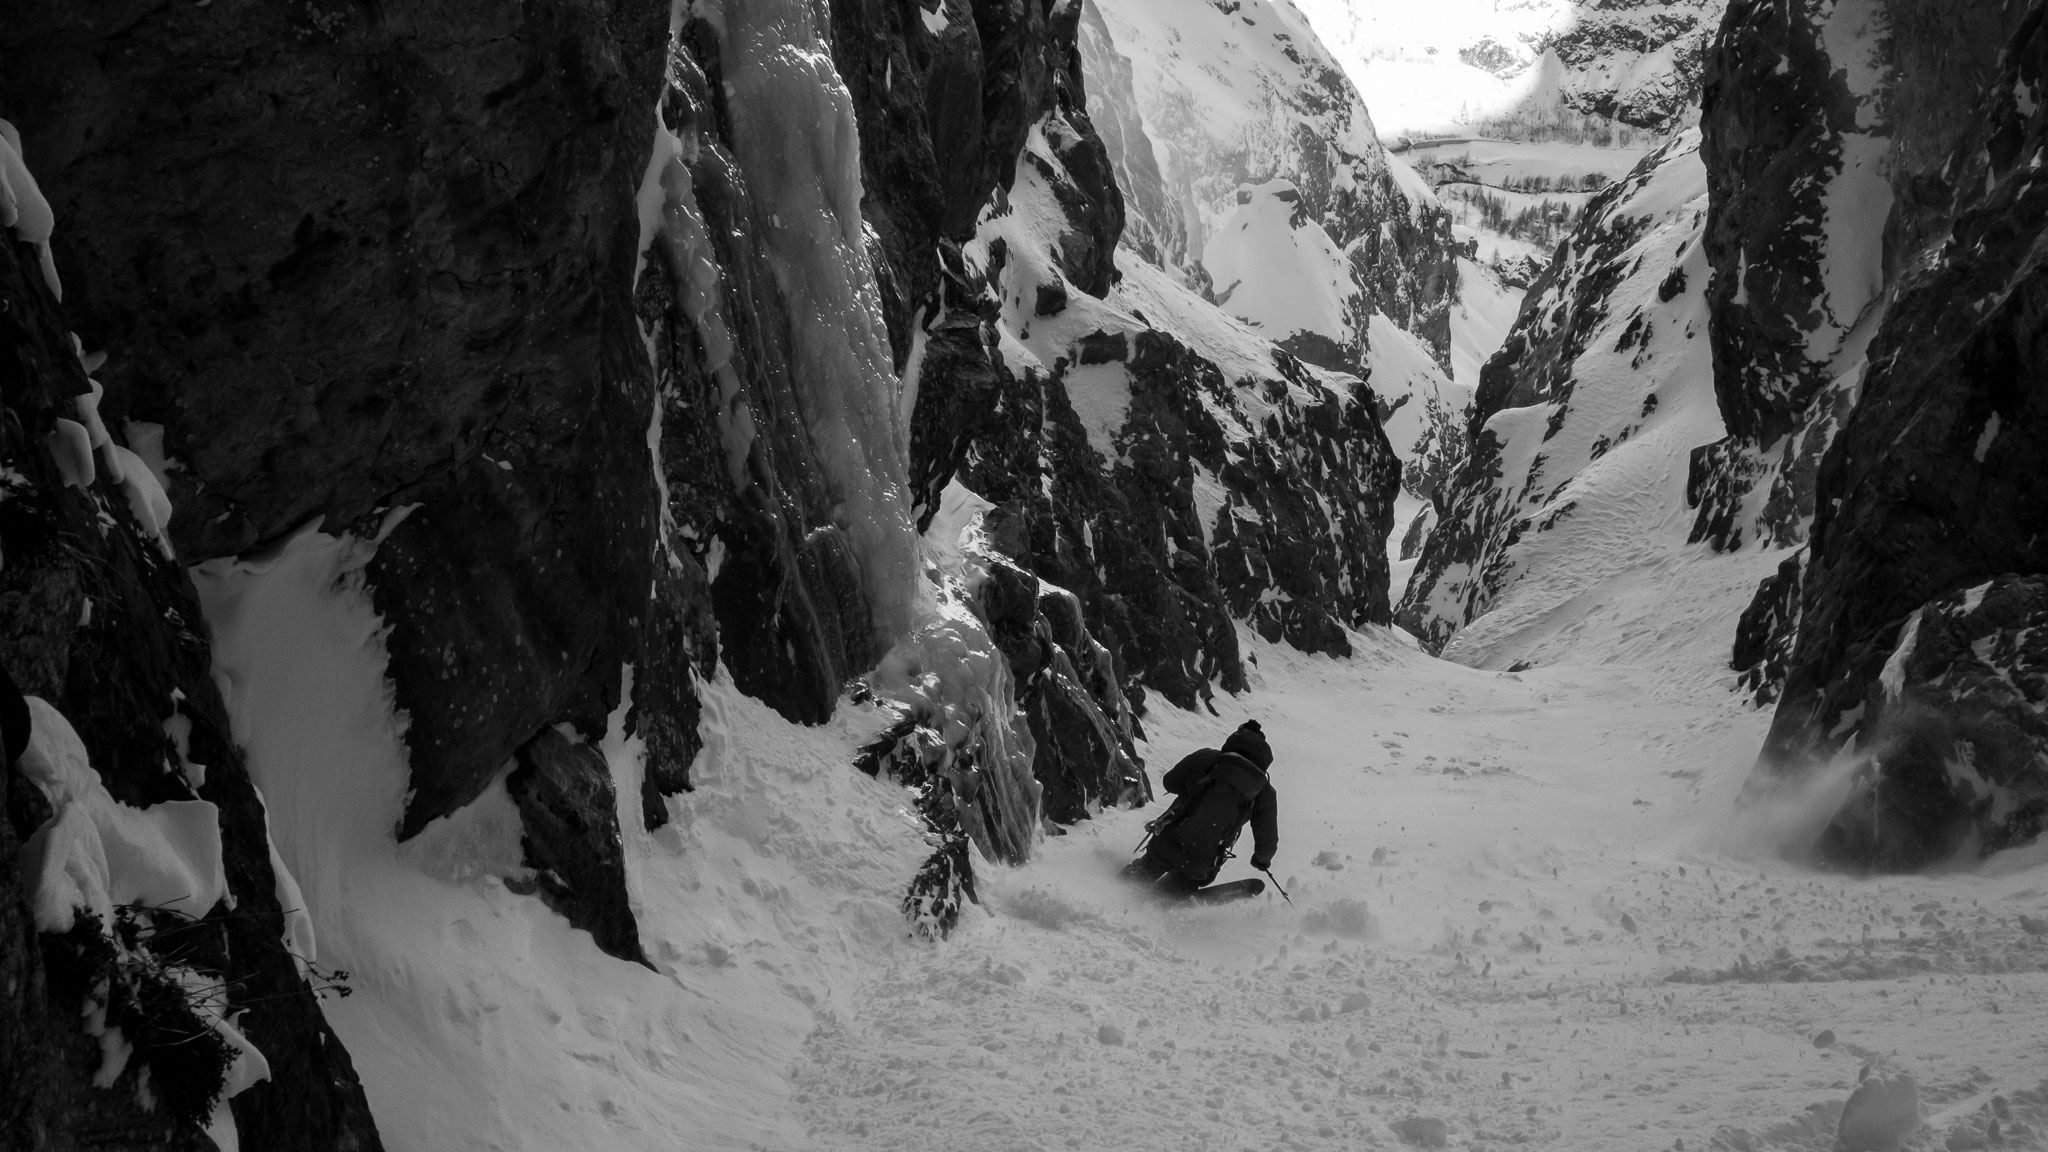 French for Couloir